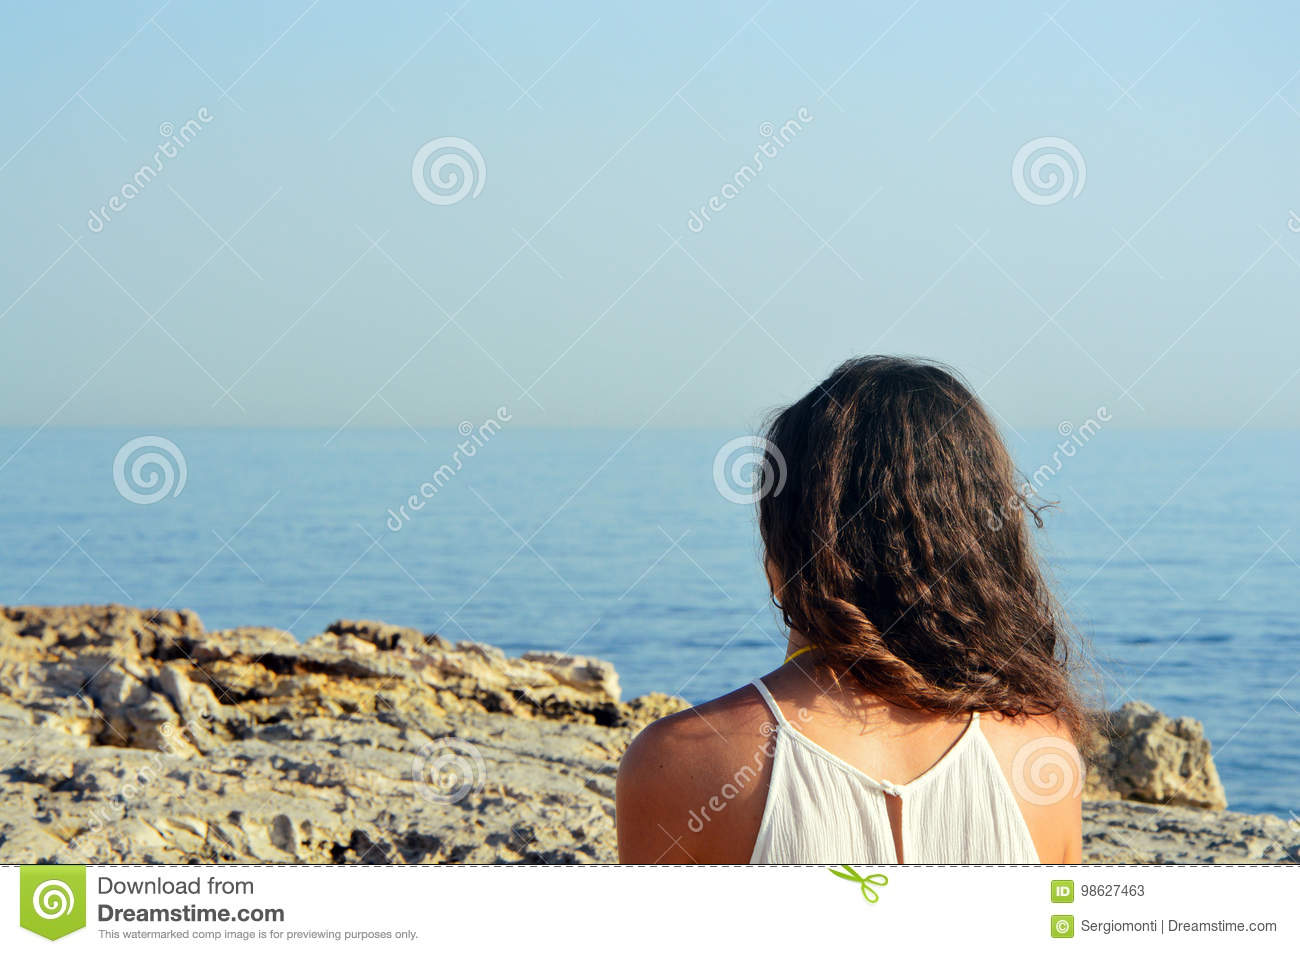 Back view of young woman with curly hair looking at the sea from rocky coast. Traveler on background beach.